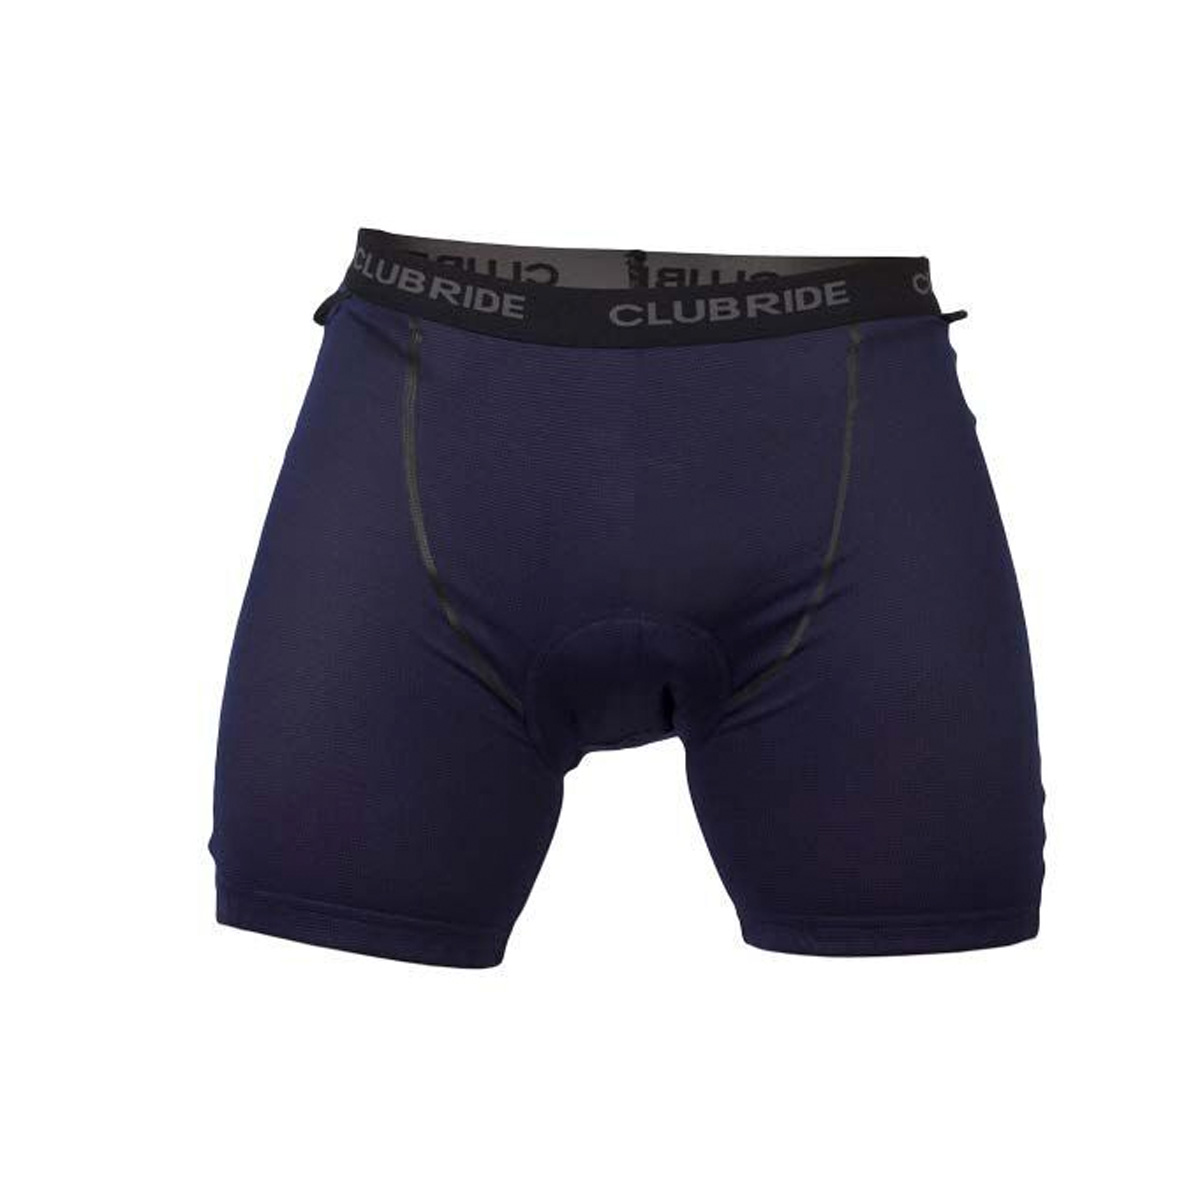 Club Ride 2016 17 Men's Woodchuck Cycling Short Liner MIS302 by Club Ride